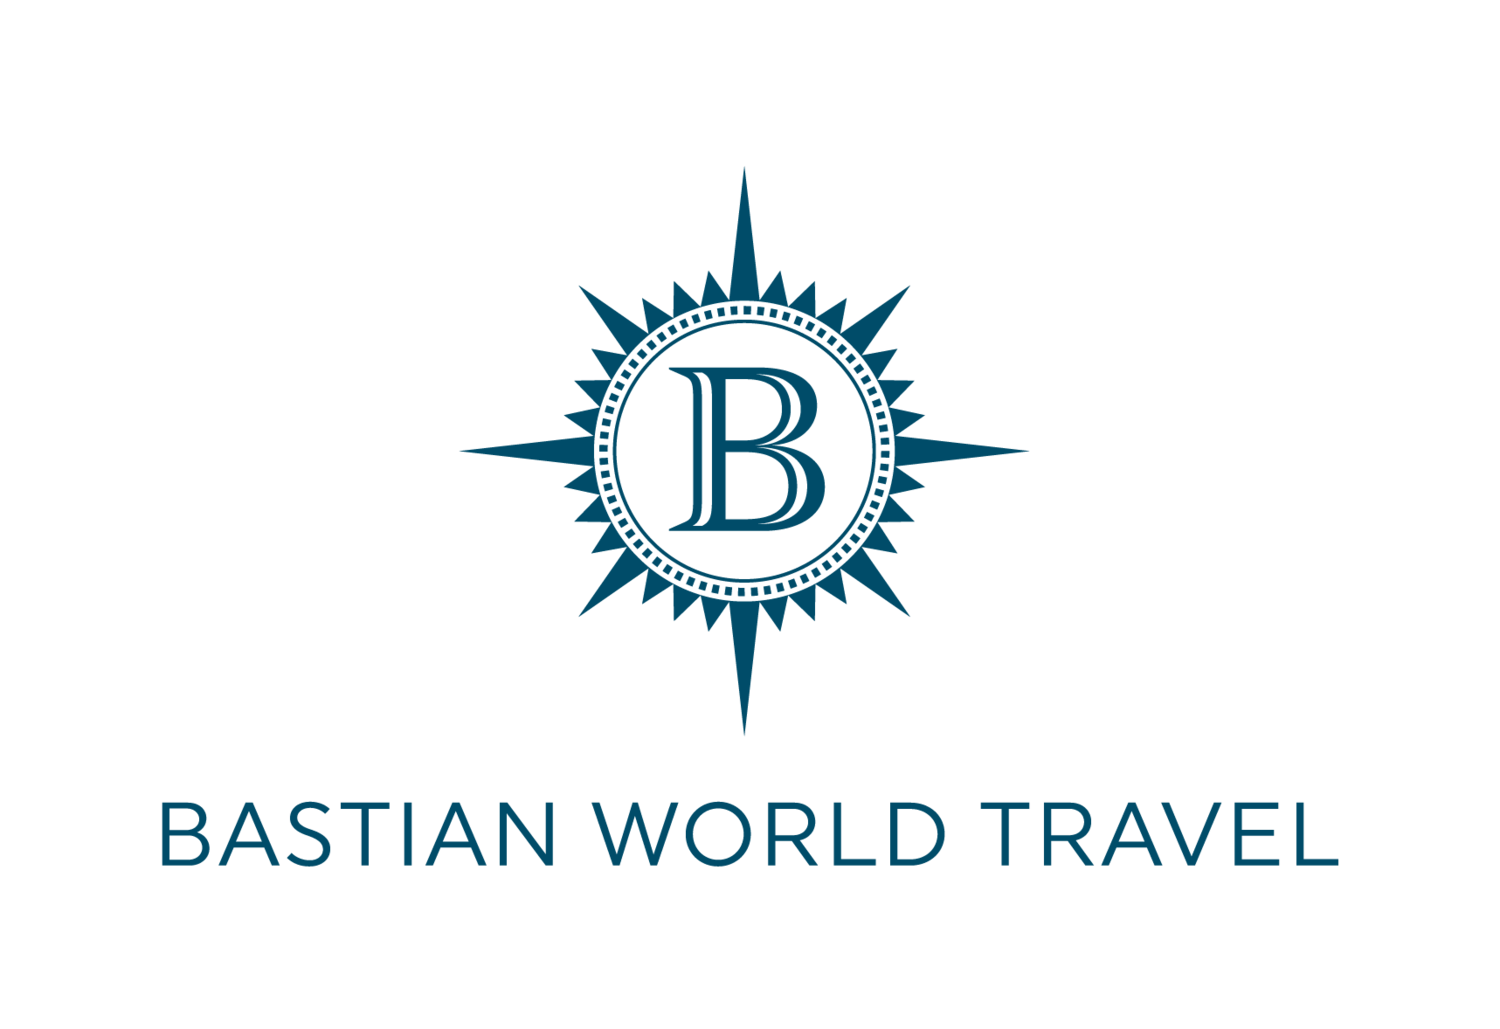 Bastian World Travel